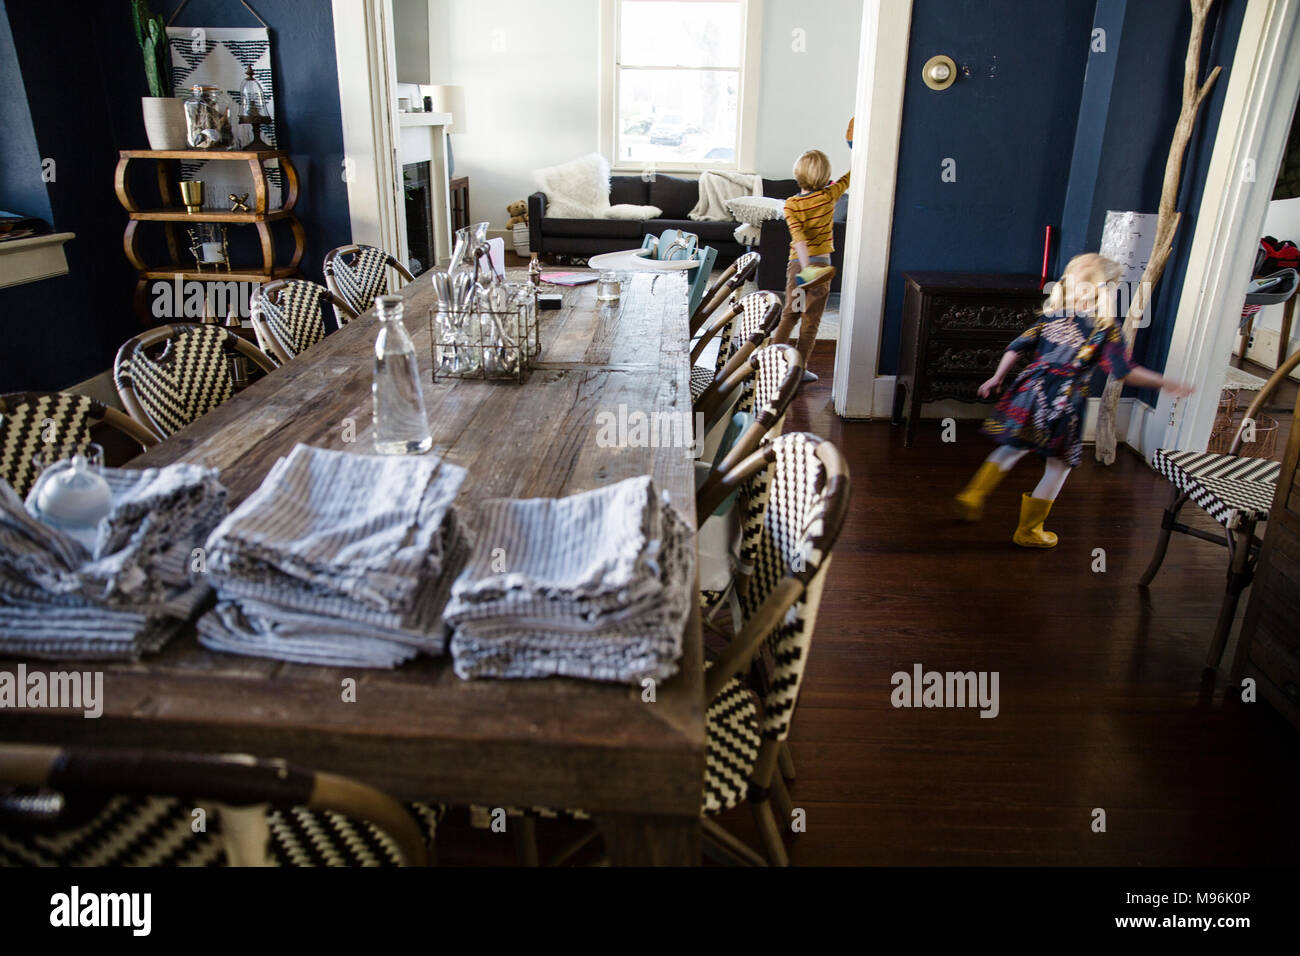 Children around dining table with napkins on top - Stock Image